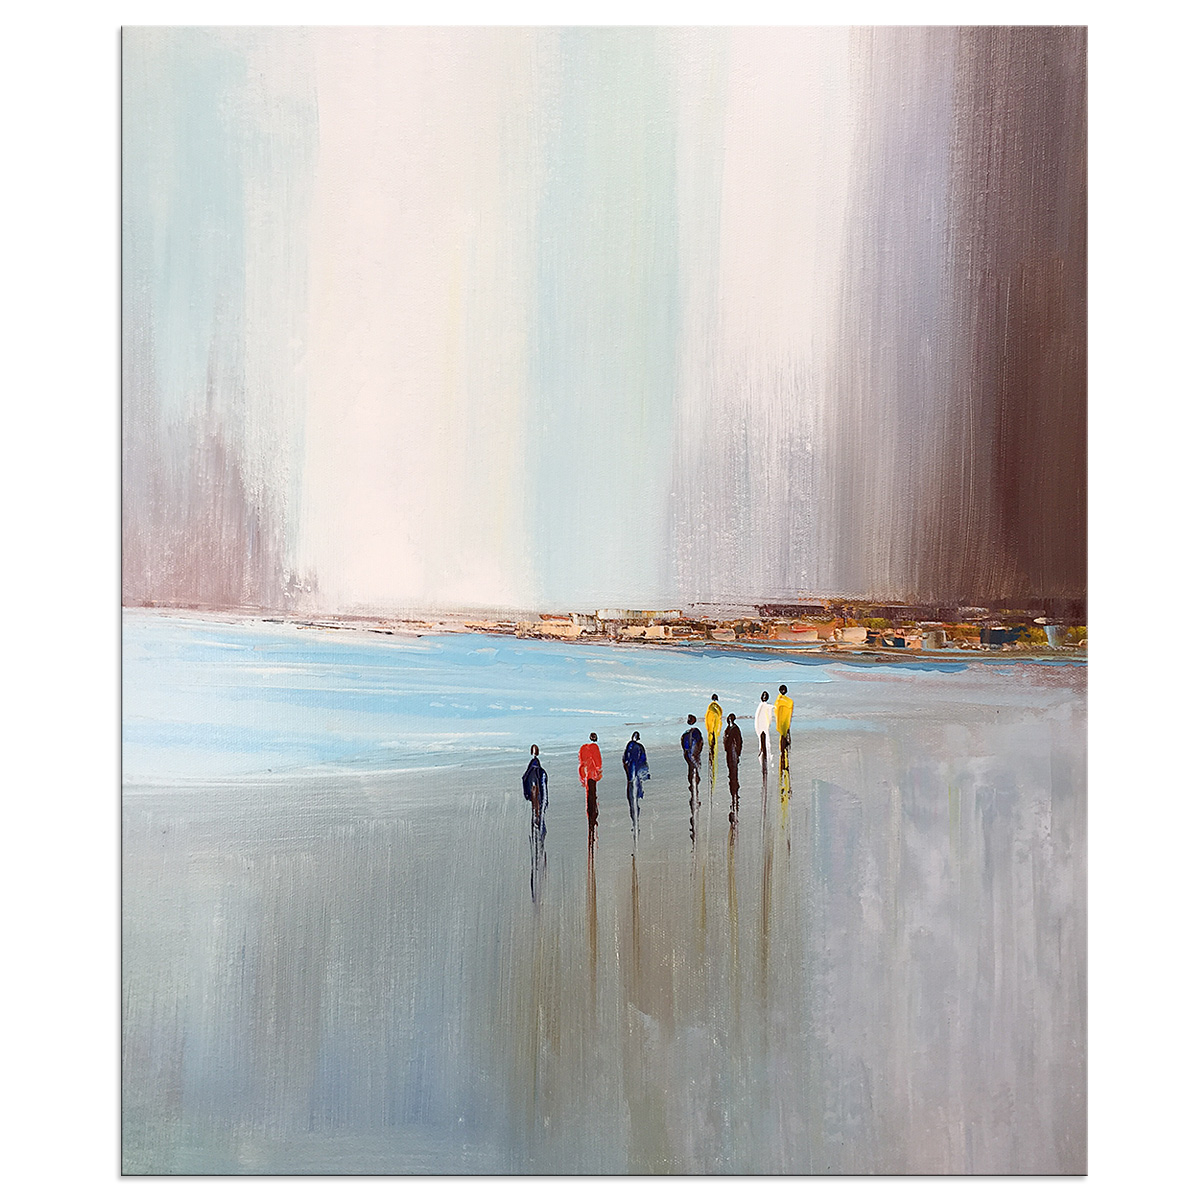 Oil Paintings Hand Painted on Canvas Wall Art Modern Contemporary Abstract Landscape Seaside Artwork